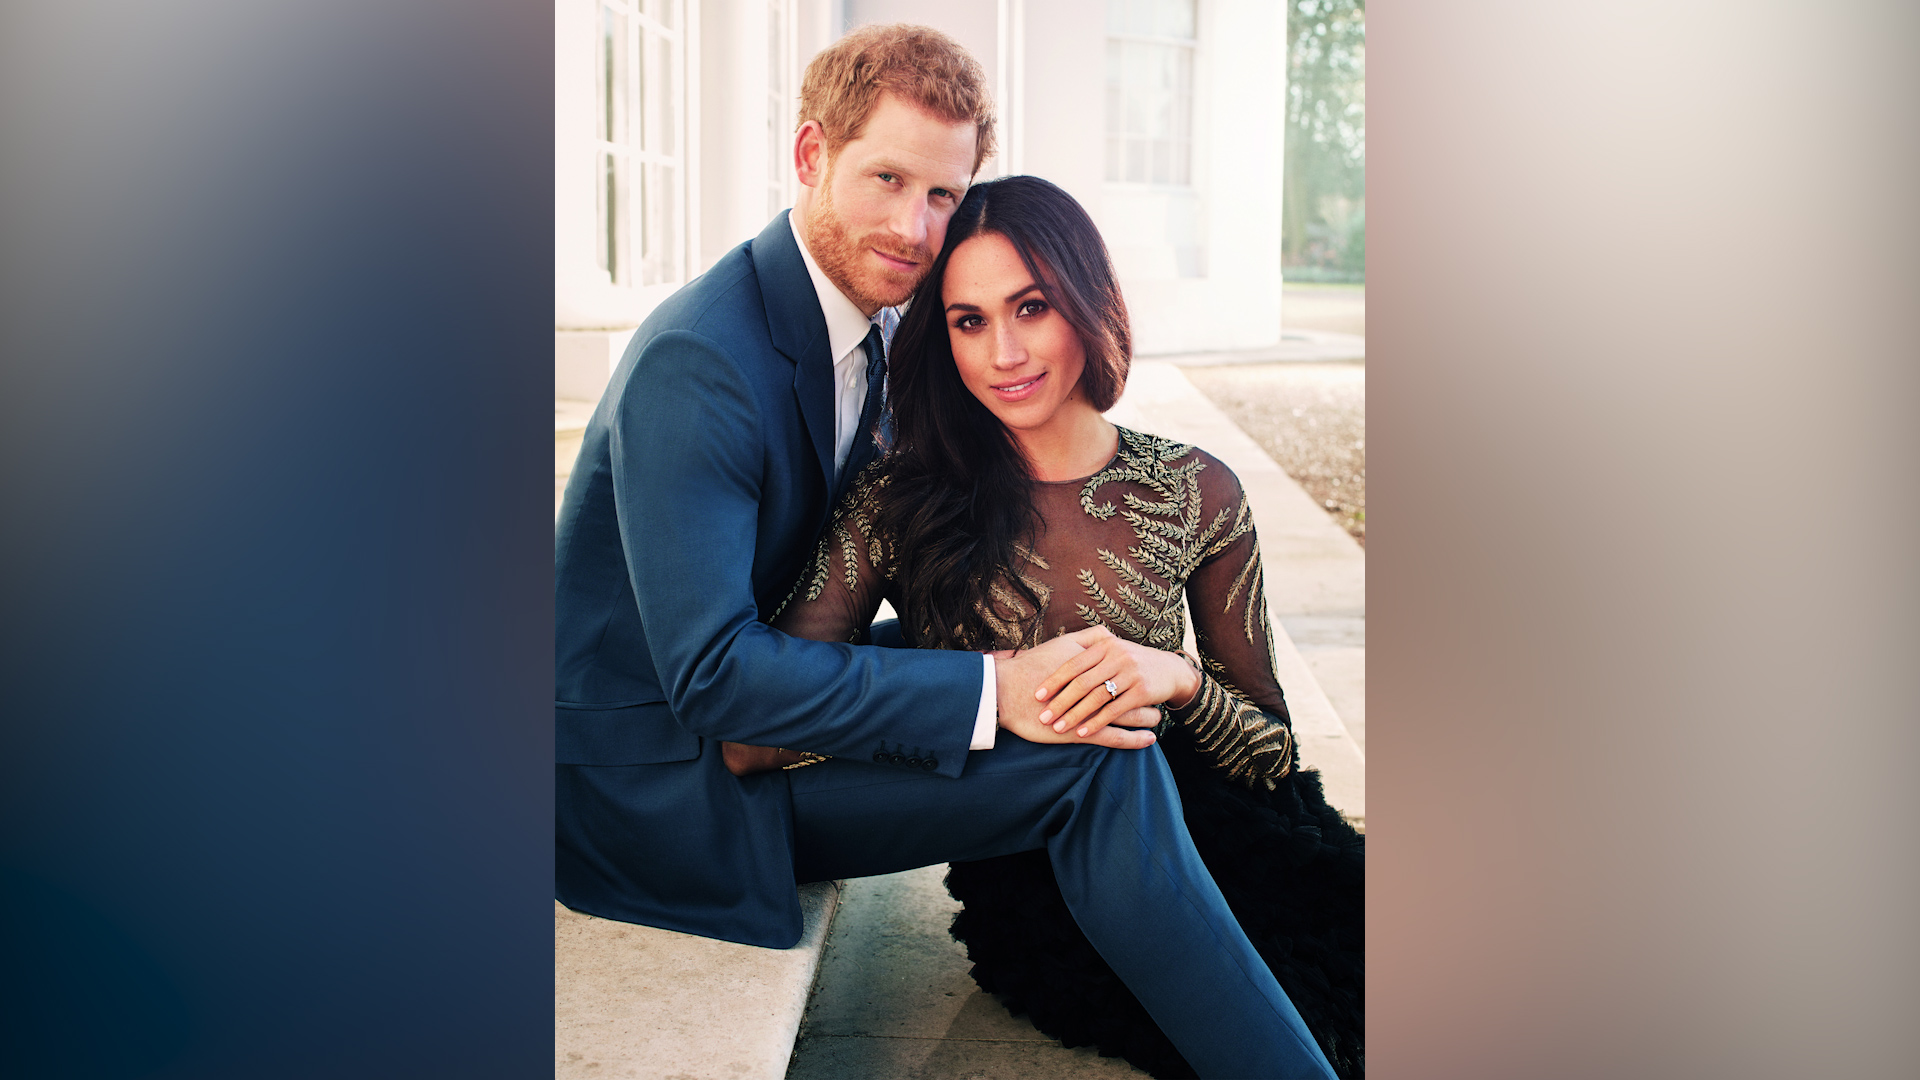 Prince Harry and Meghan Markle share breathtaking engagement photos